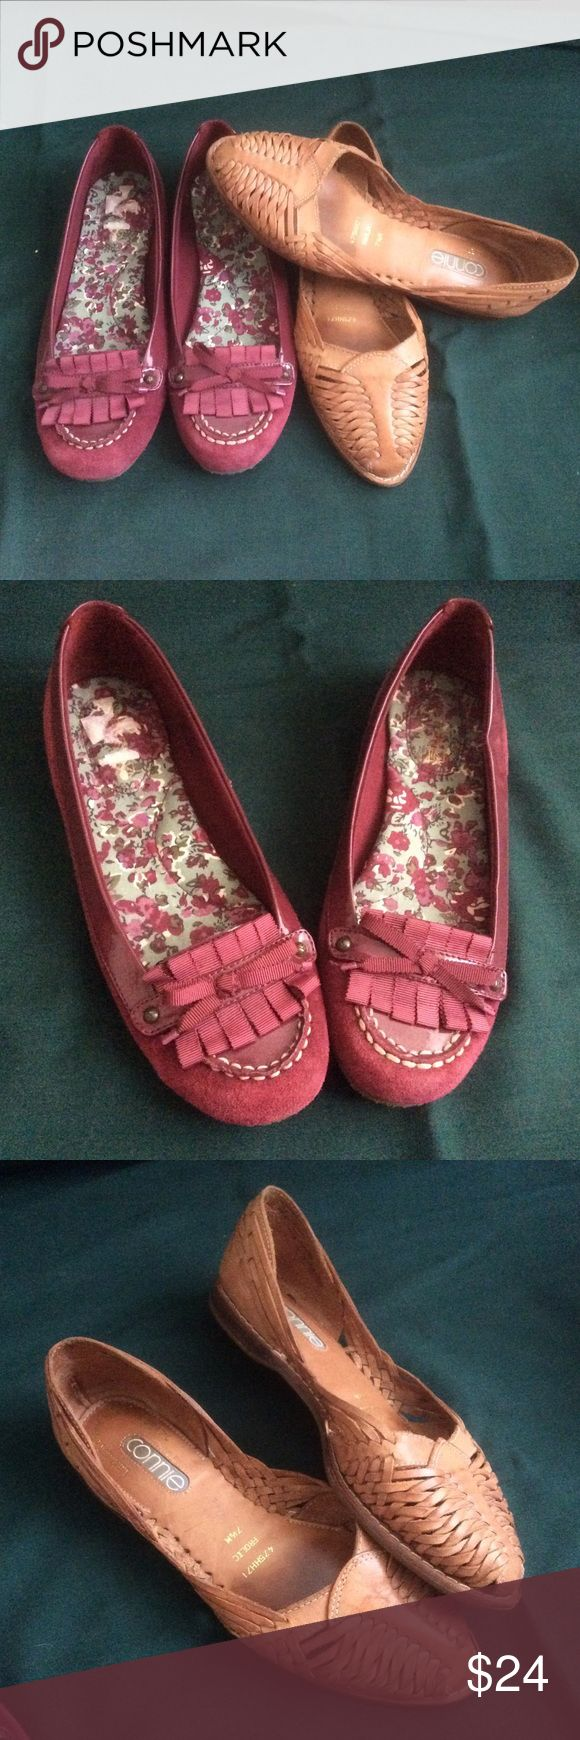 🌱 Sperry Top Sider flats burgundy boater shoes 7 Sperry Top Sider burgundy flats with comfortable cushion and cute front ribbon bow detailing. Only worn once!! Size 7. Sperry Top-Sider Shoes Flats & Loafers